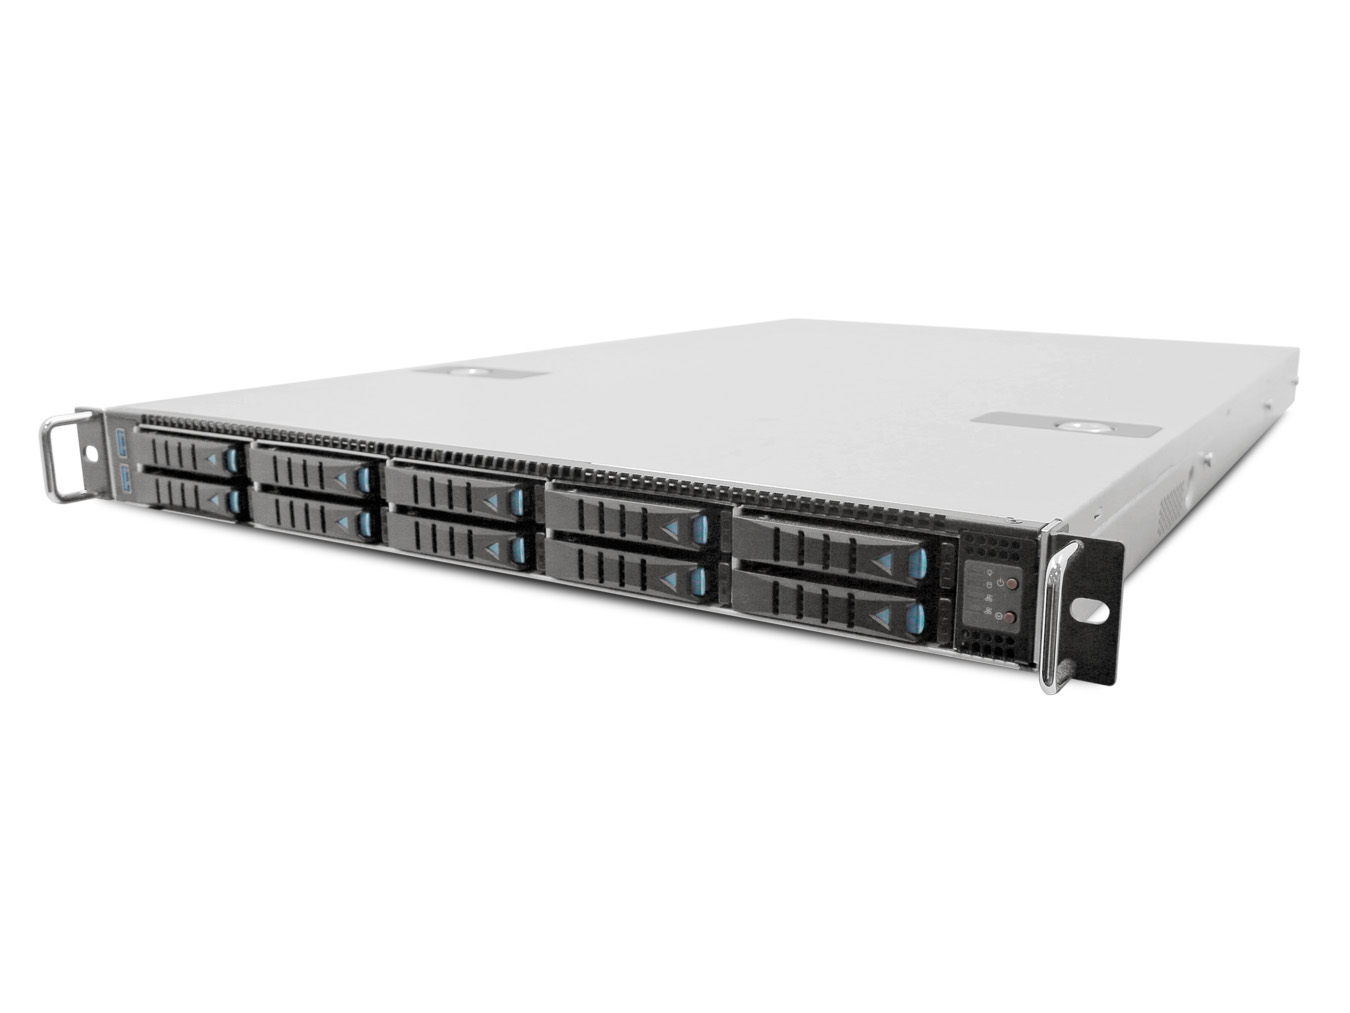 AIC RSC-1AT XE1-1AT00-01 1U SAS/SATA Storage Server Chassis